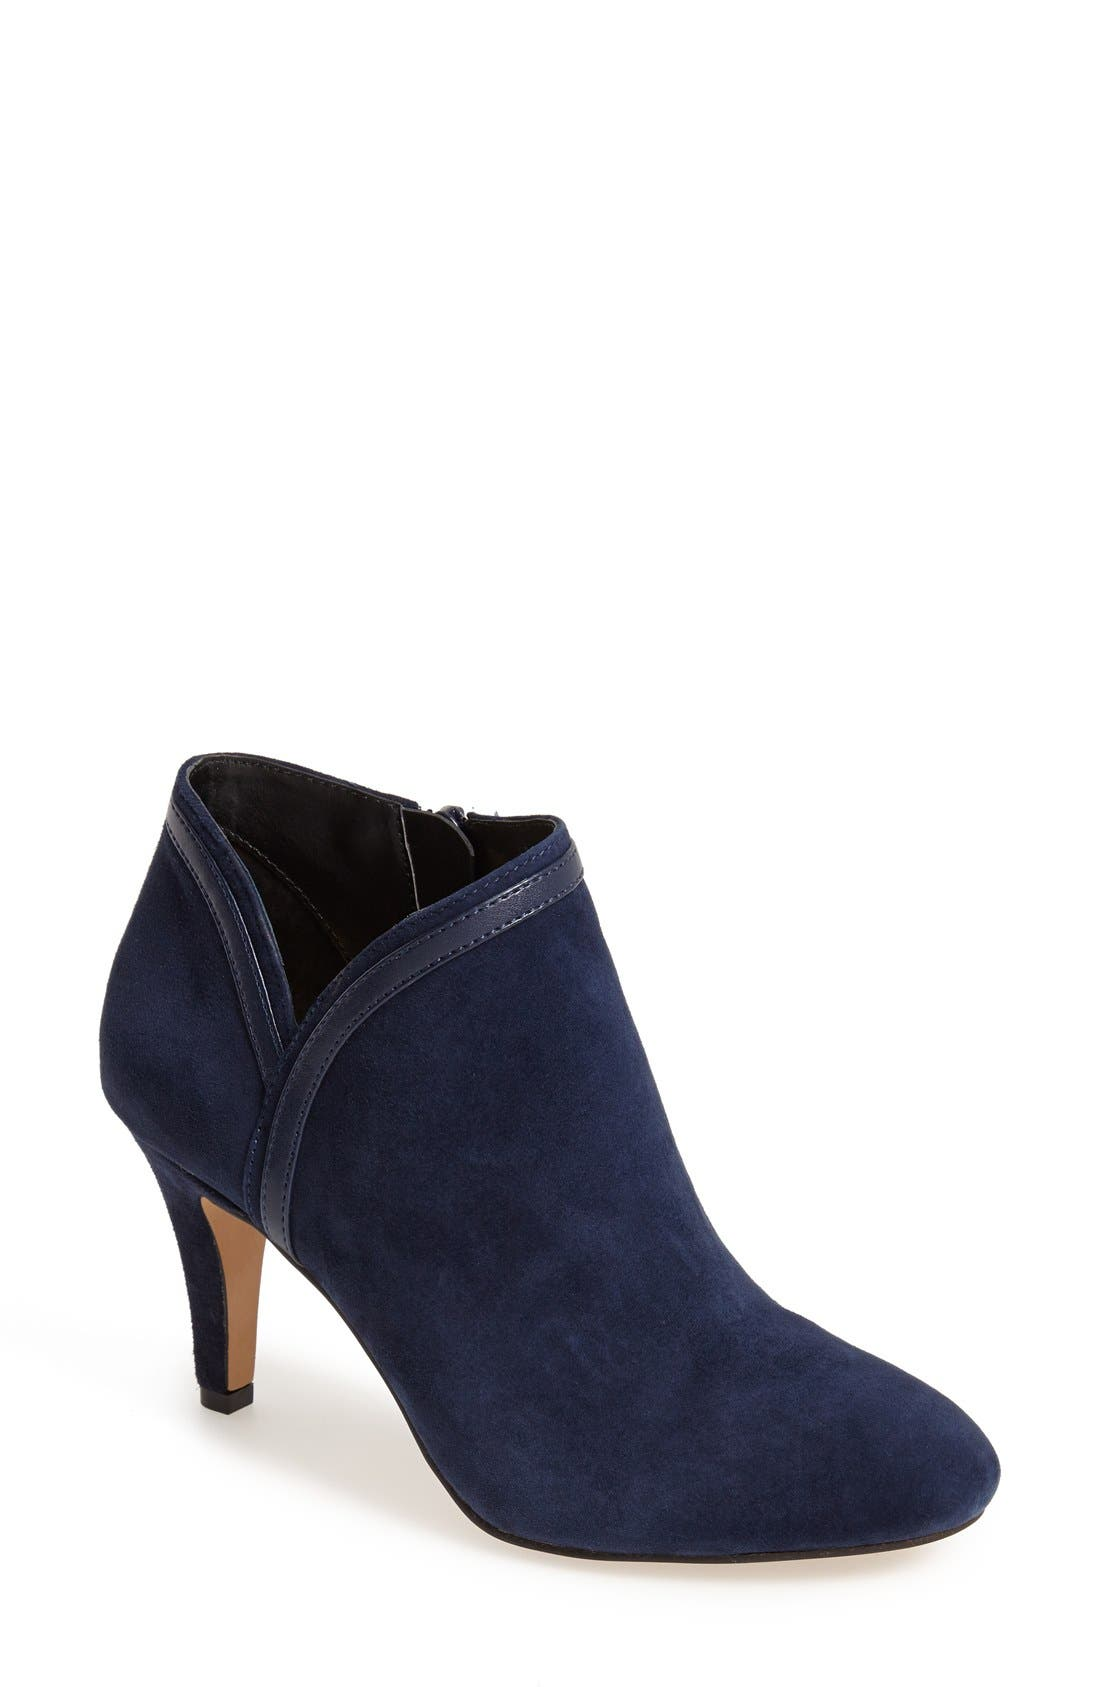 Alternate Image 1 Selected - Sole Society 'Roxine' Bootie (Women)